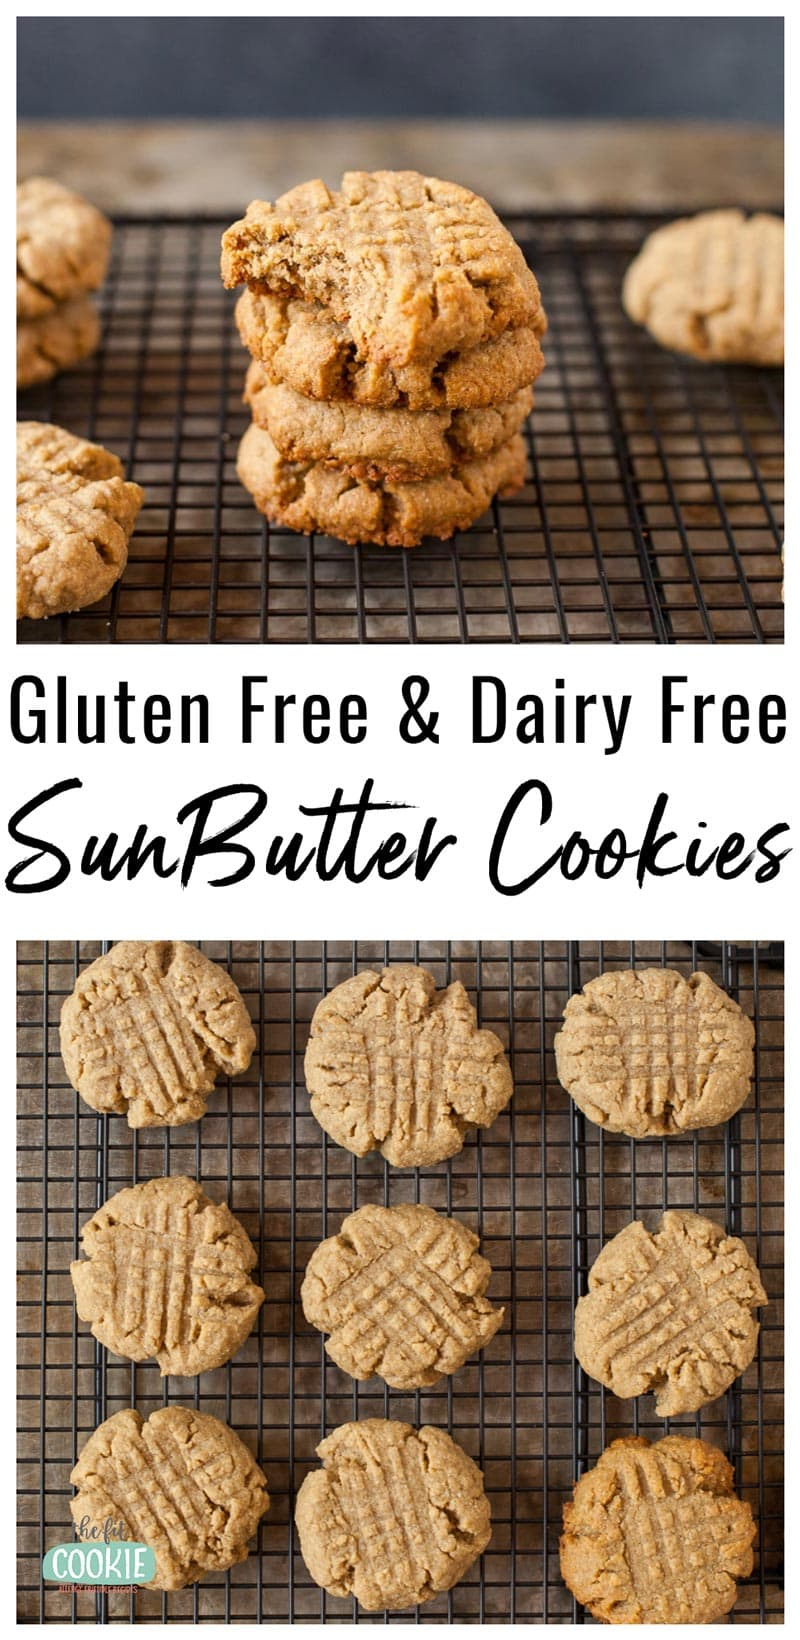 photo collage of gluten free sunbutter cookies on a cooling rack